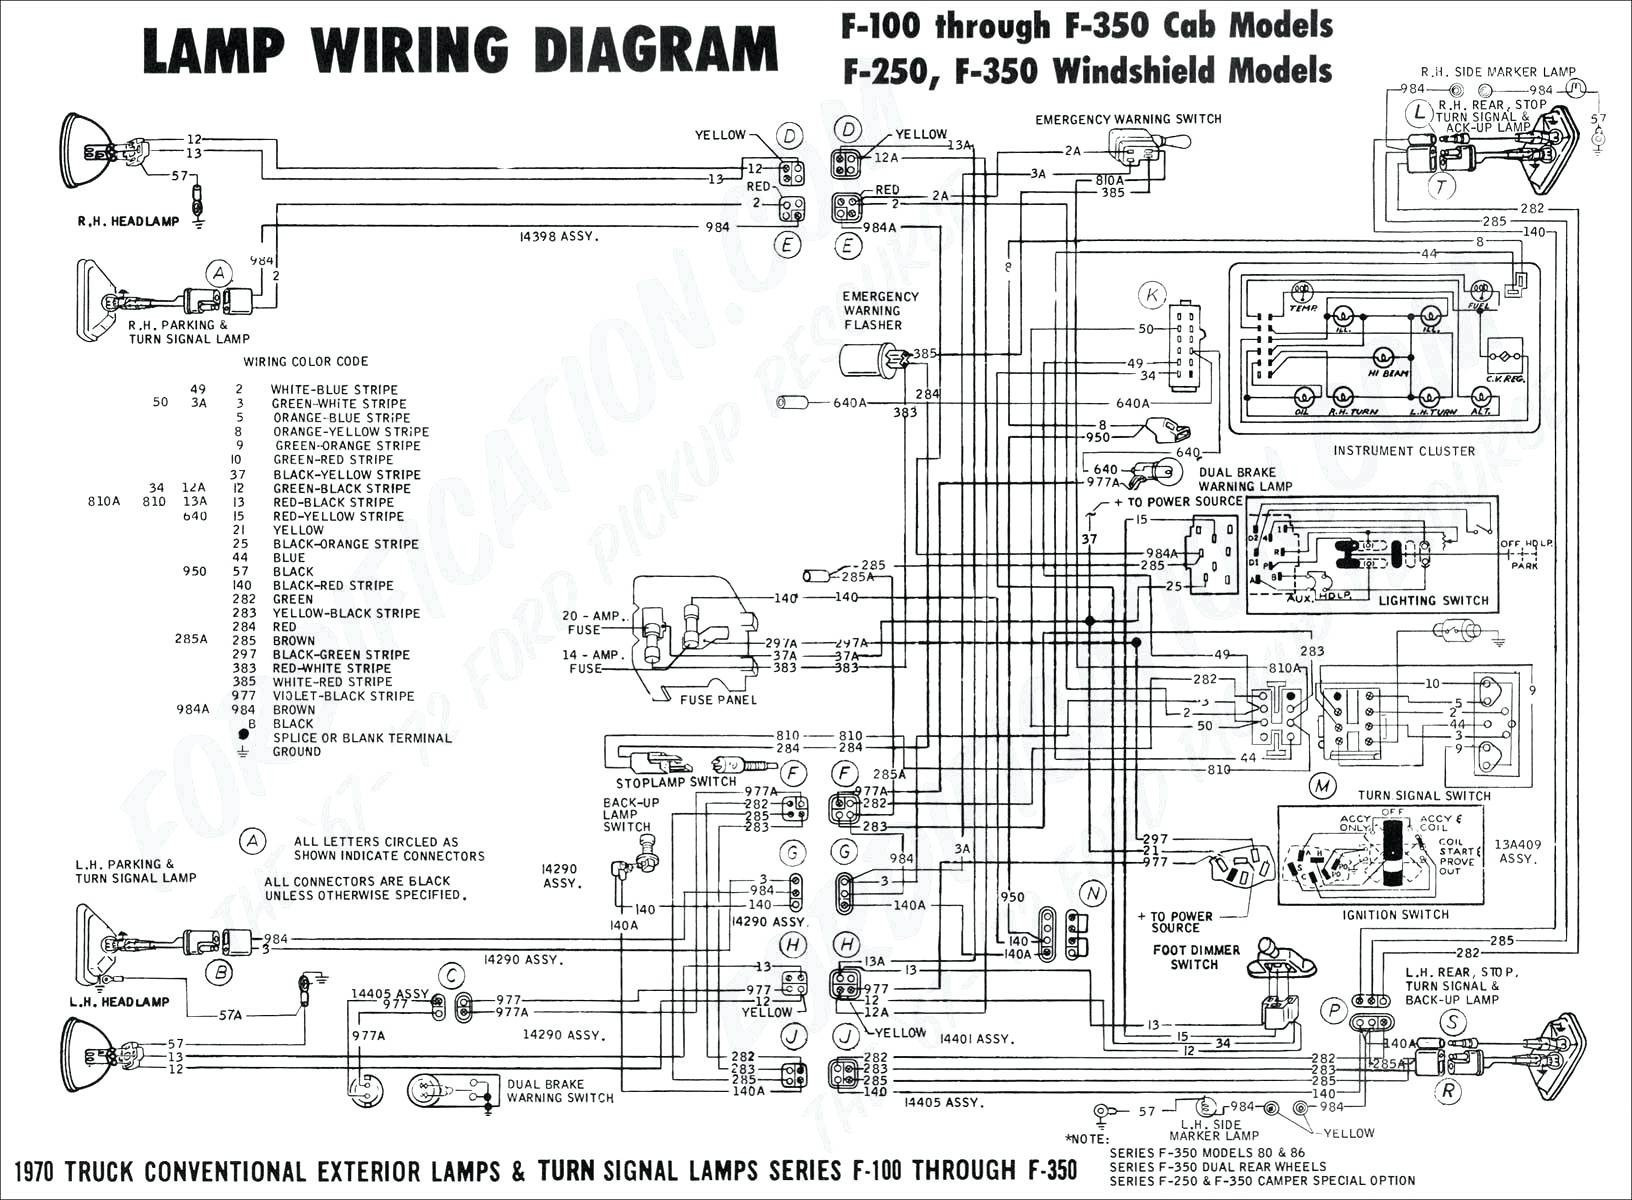 [NRIO_4796]   ZN_1213] 98 Expedition Radio Wire Diagram | 1997 Ford Expedition Wiring Diagram |  | Xorcede Winn Mentra Mohammedshrine Librar Wiring 101